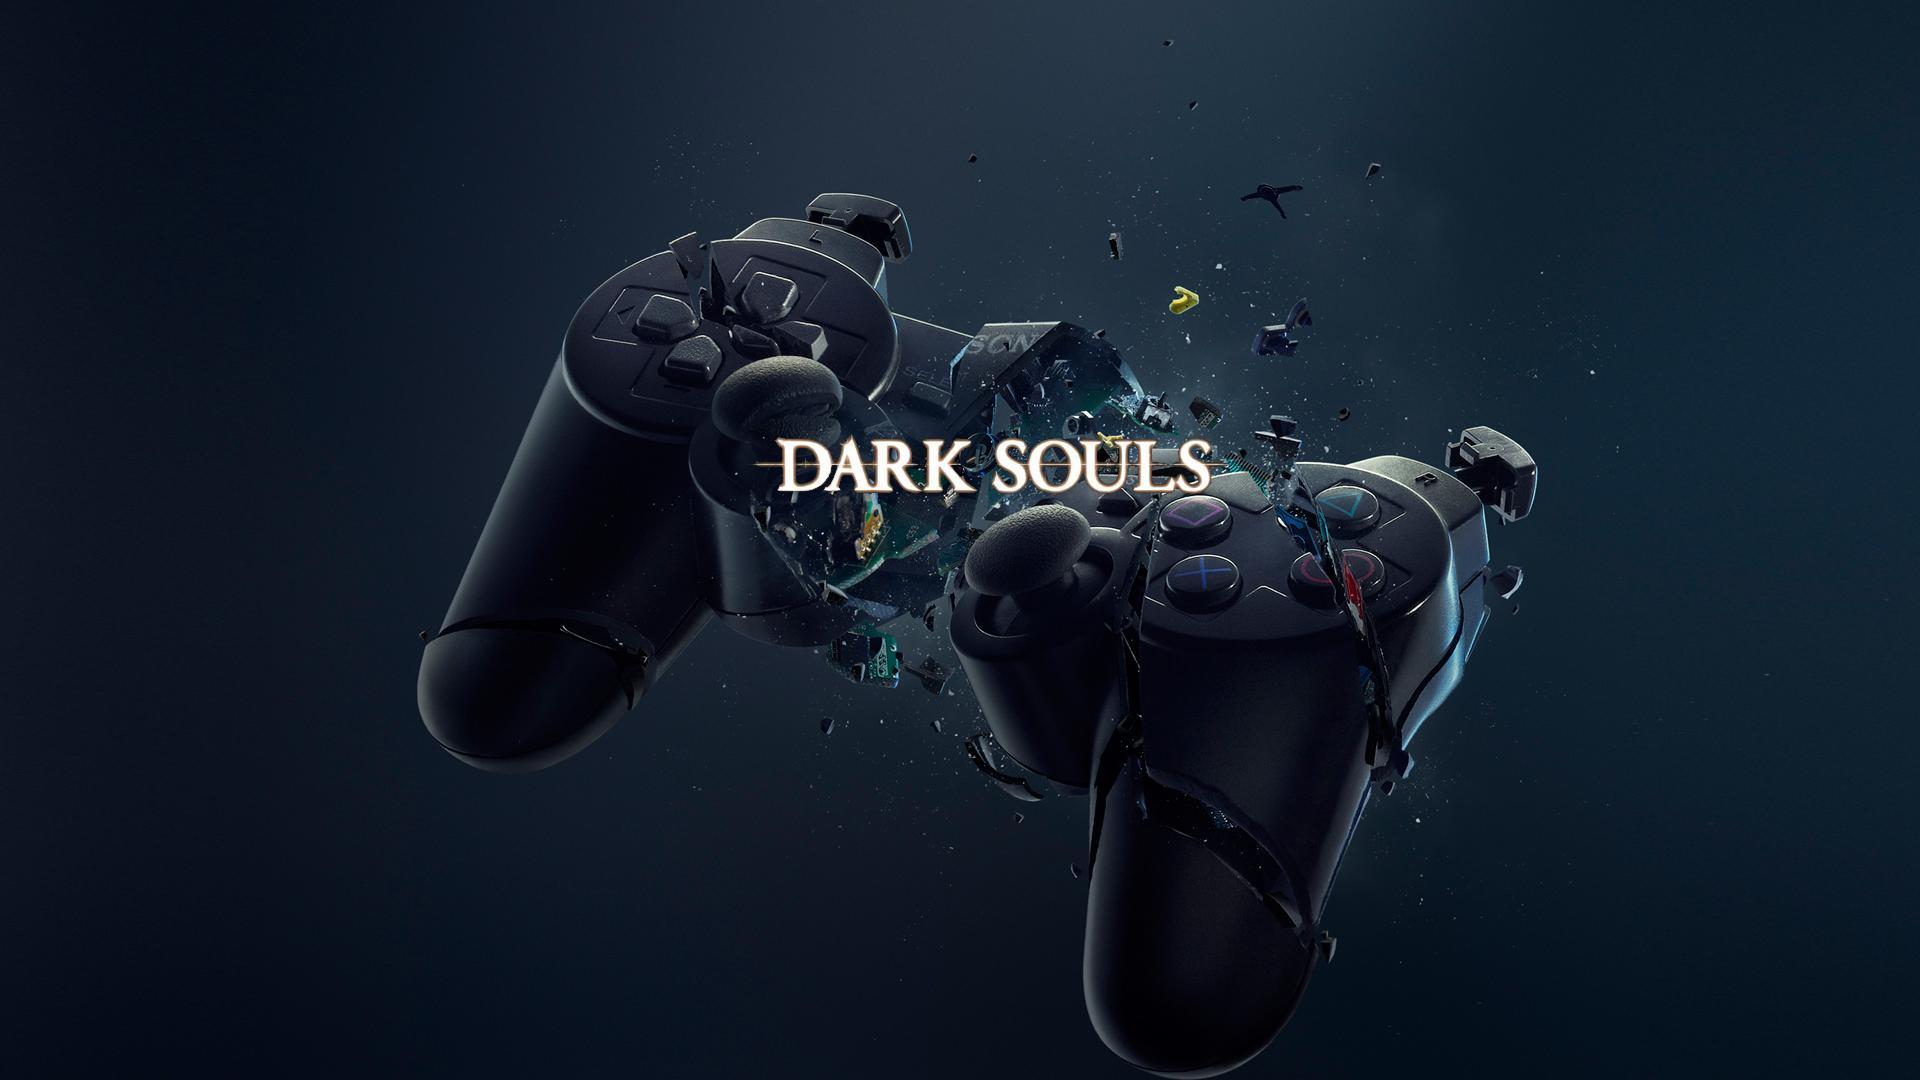 dark souls19201080 wallpapercave voltagebd Images